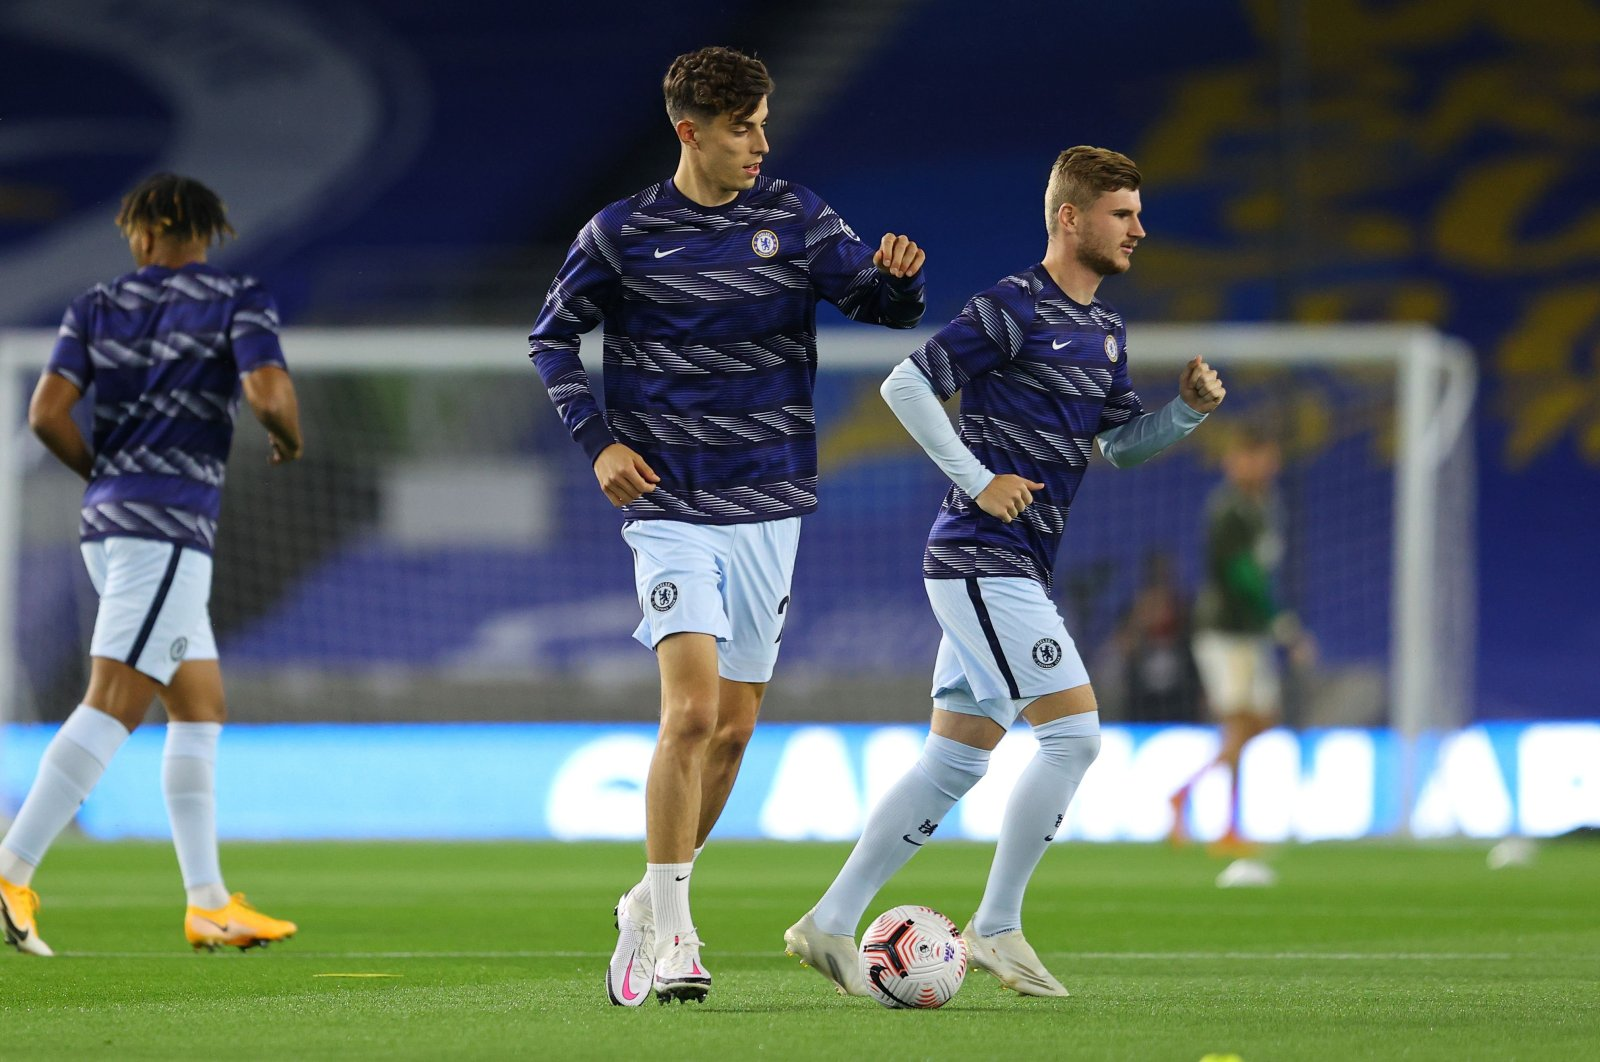 Chelsea's midfielder Kai Havertz (C) and forward Timo Werner (R), signed for a combined $160 million, warm up ahead of the Premier League football match between Brighton & Hove Albion and Chelsea at the American Express Community Stadium in Brighton, England, Sept. 14, 2020. (AFP Photo)